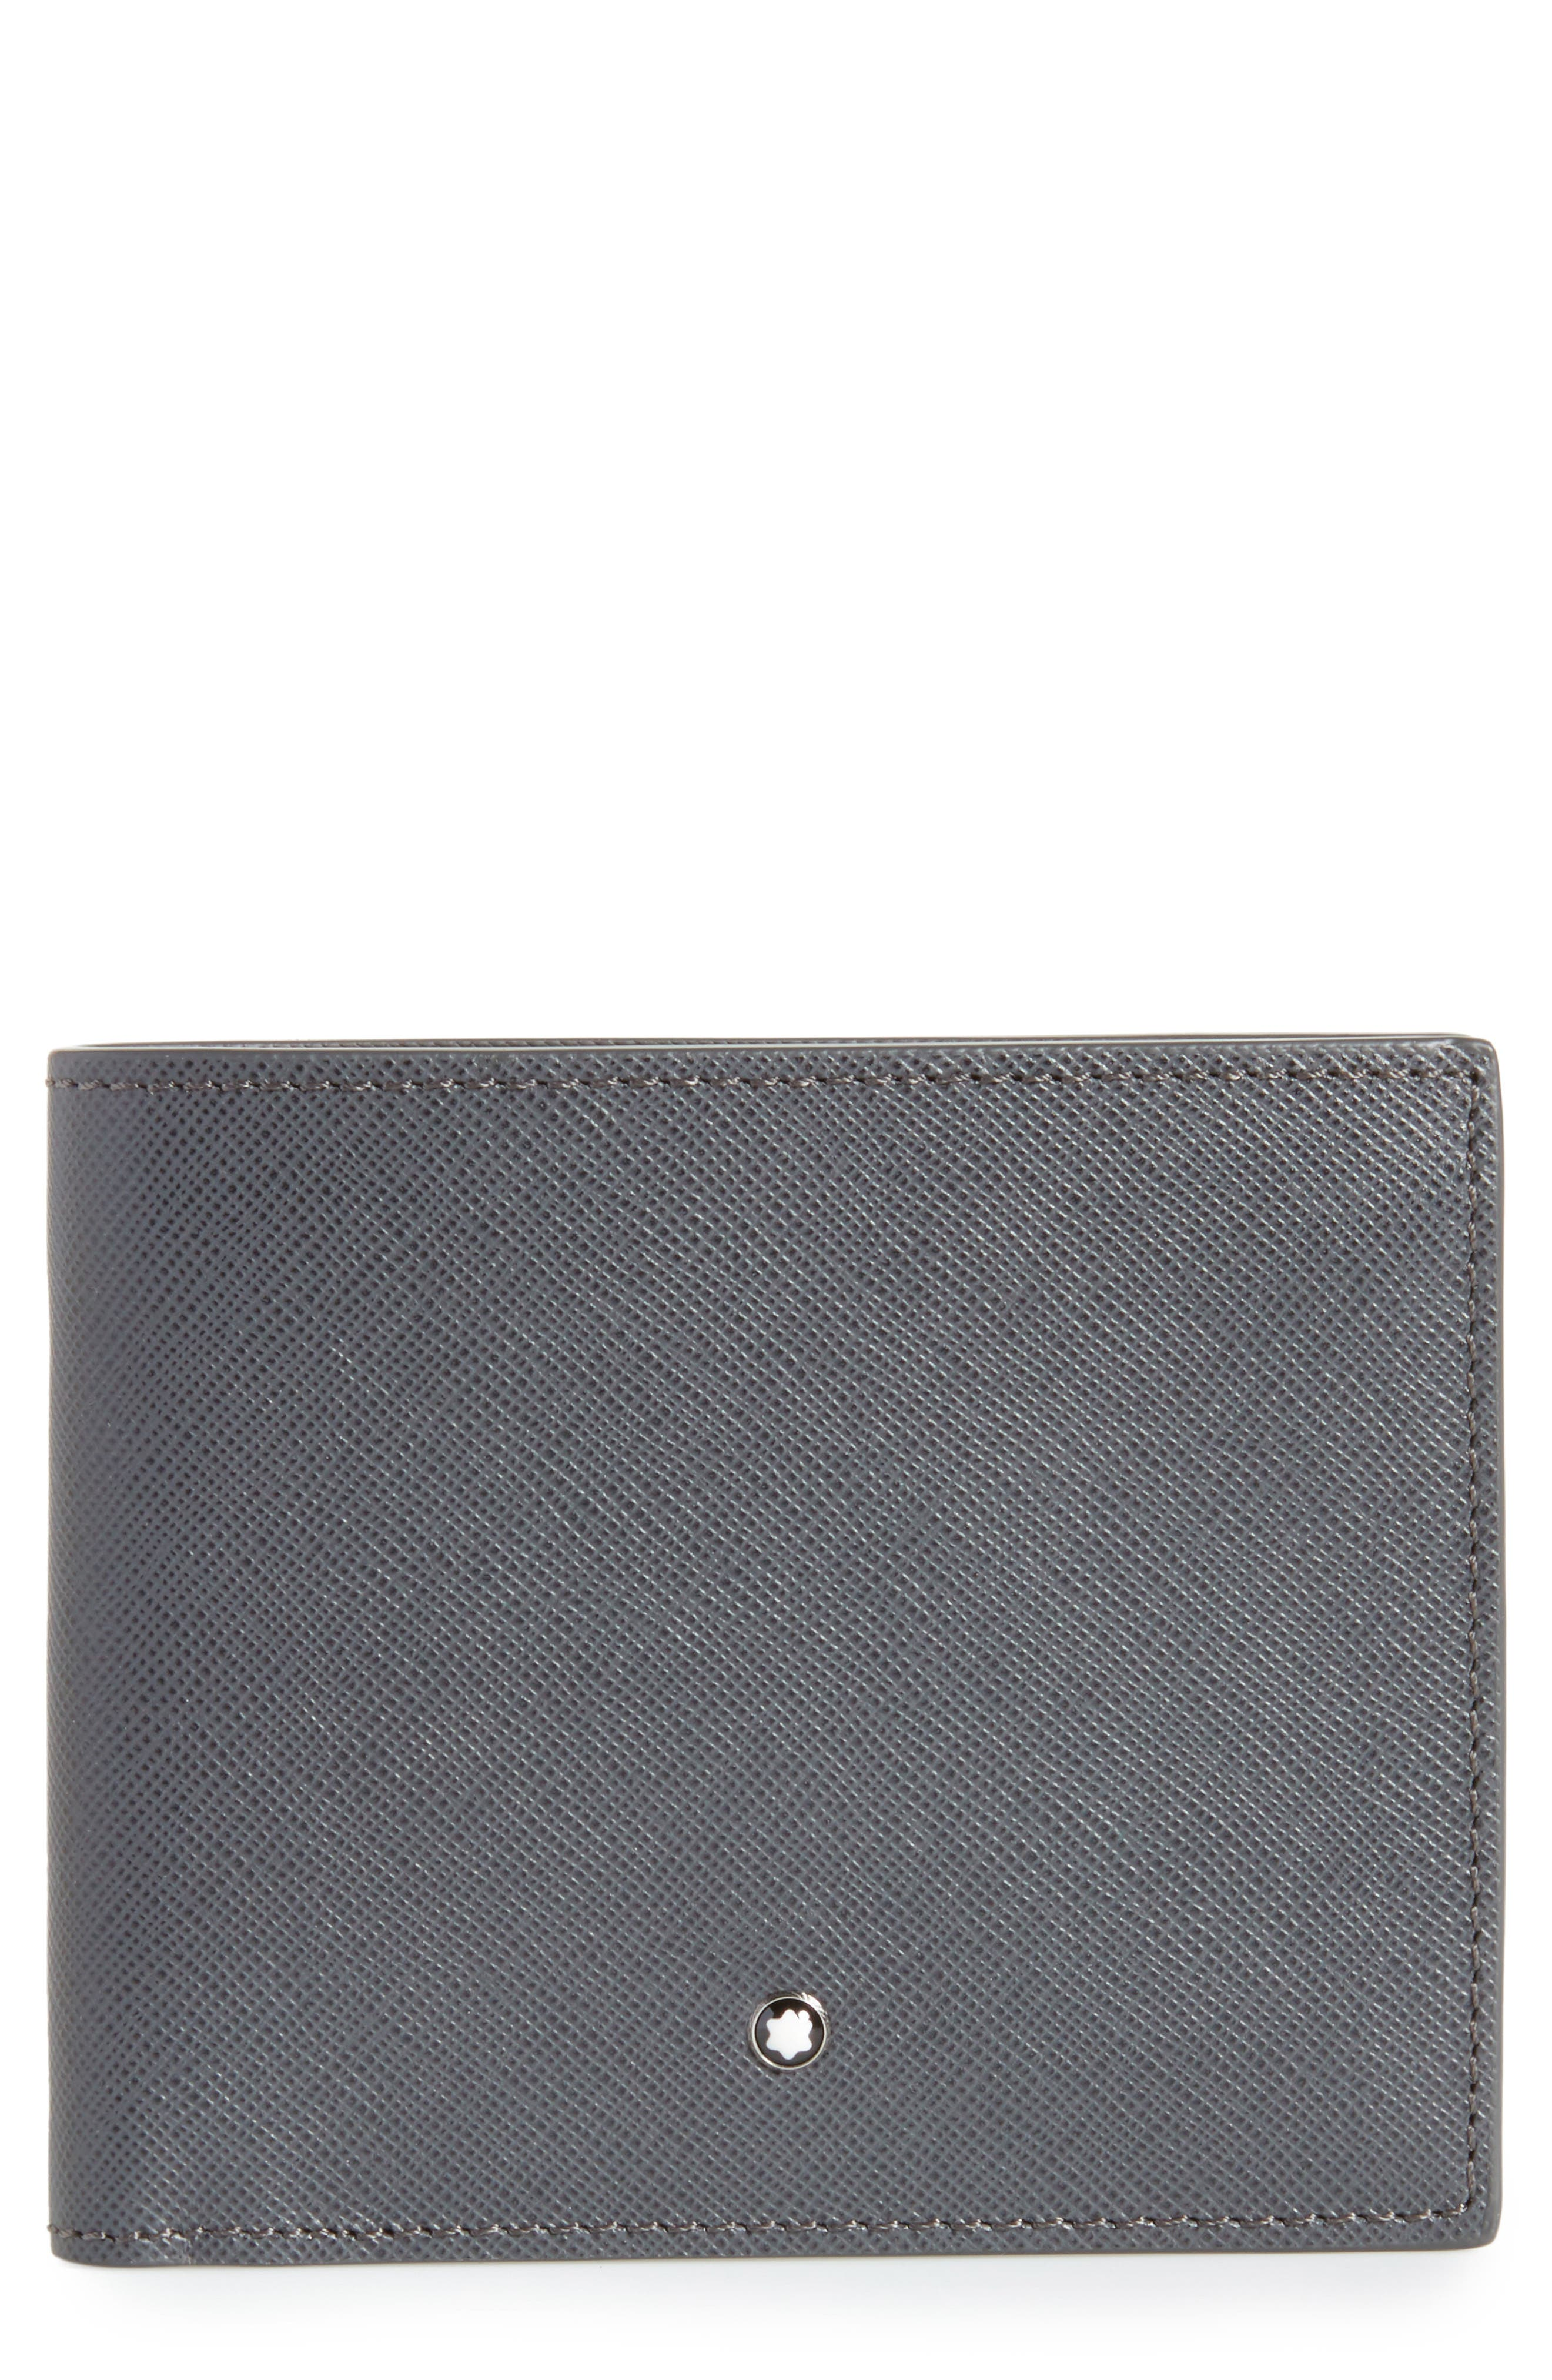 MONTBLANC, Sartorial Leather Bifold Wallet, Main thumbnail 1, color, 020